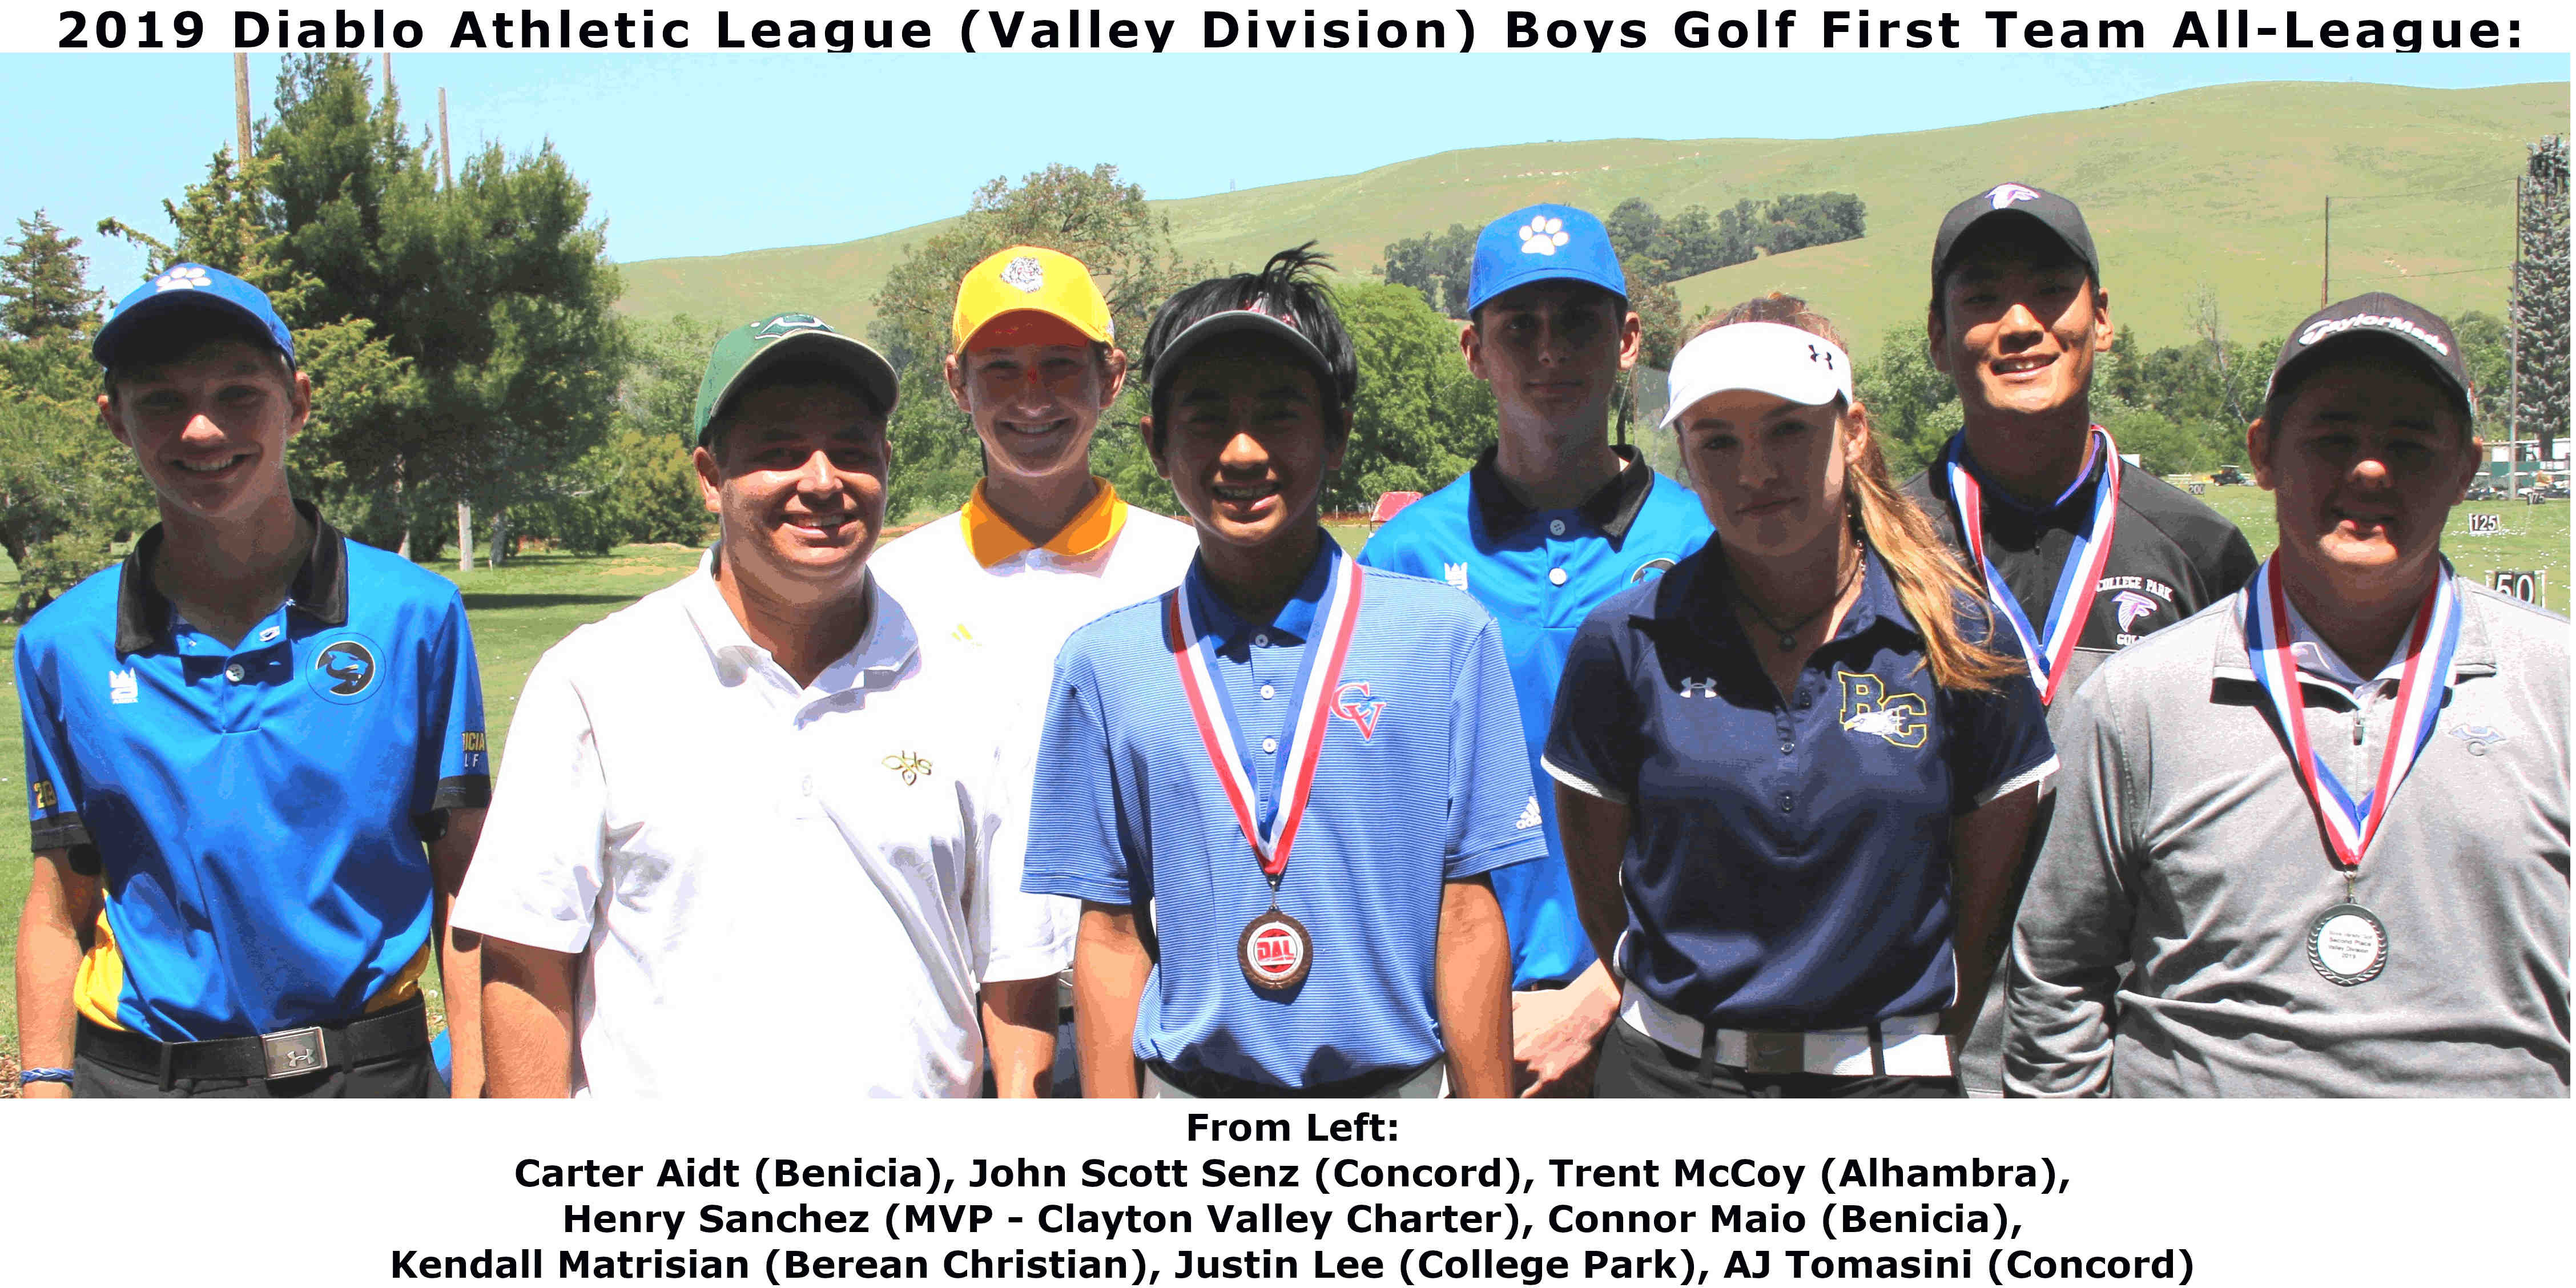 2019_1st_Team_Golf_Valley _Boys